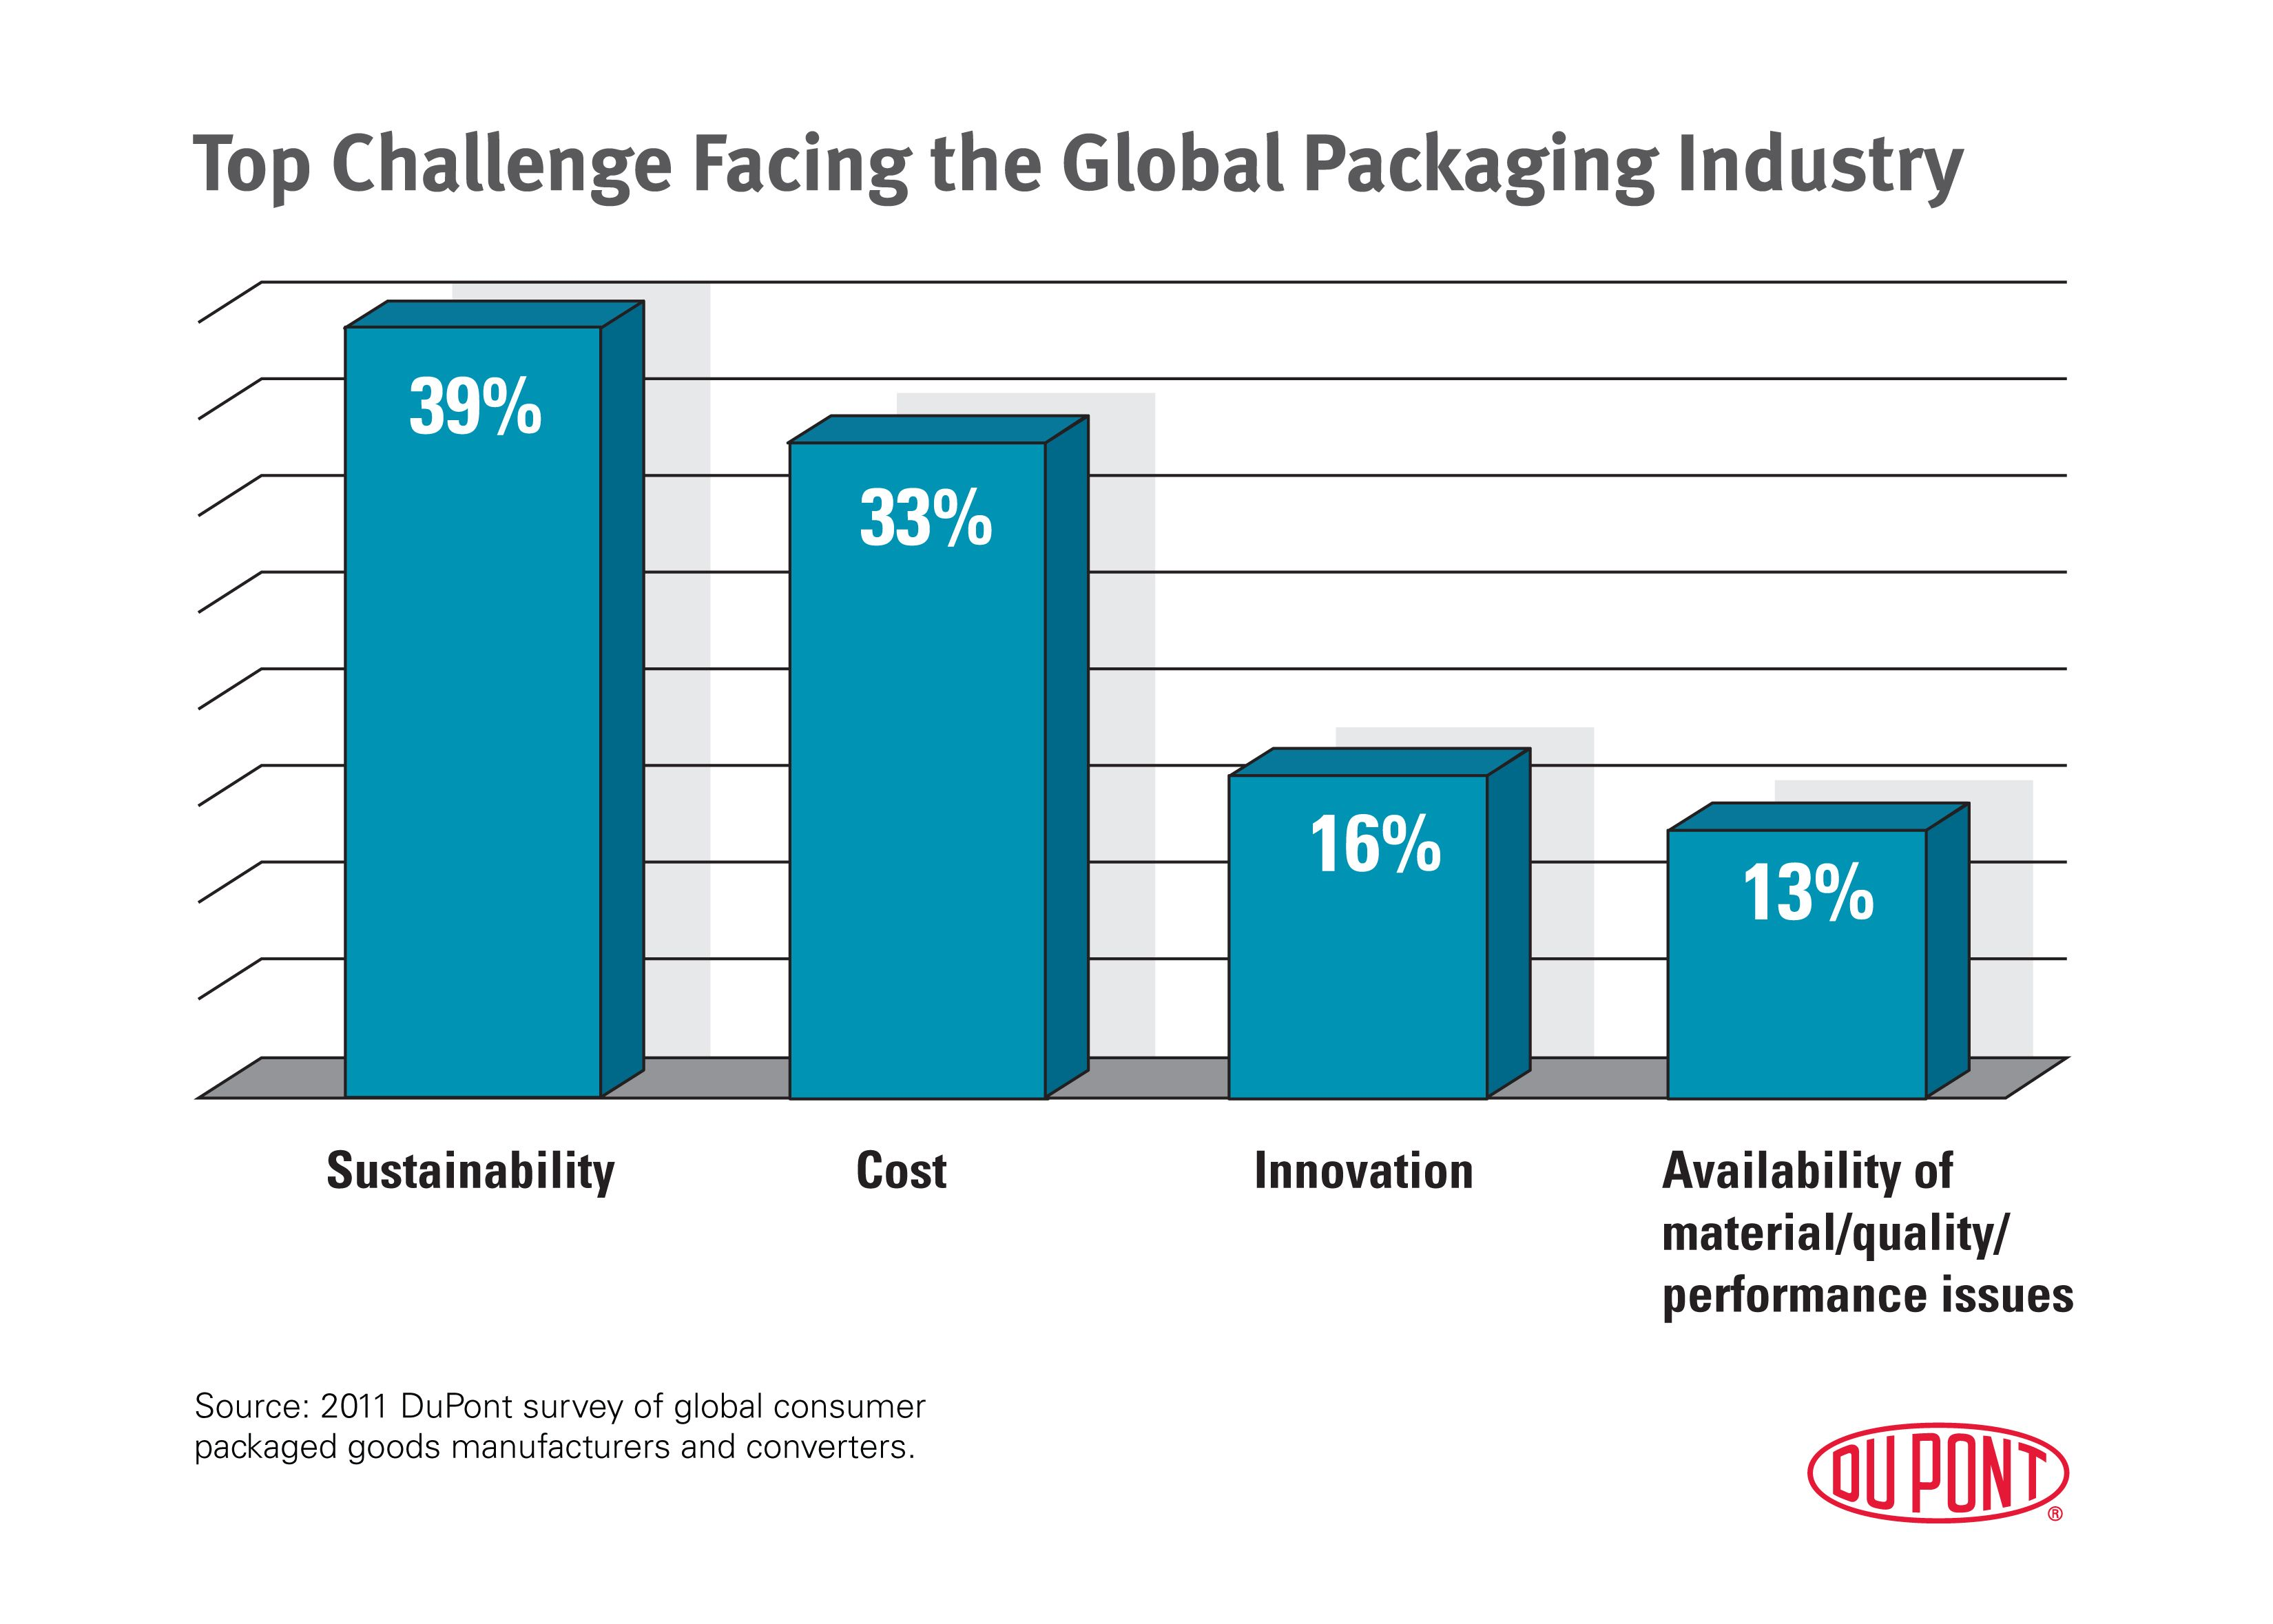 top_challenges_facing_global_packaging_industry_2011_630x450